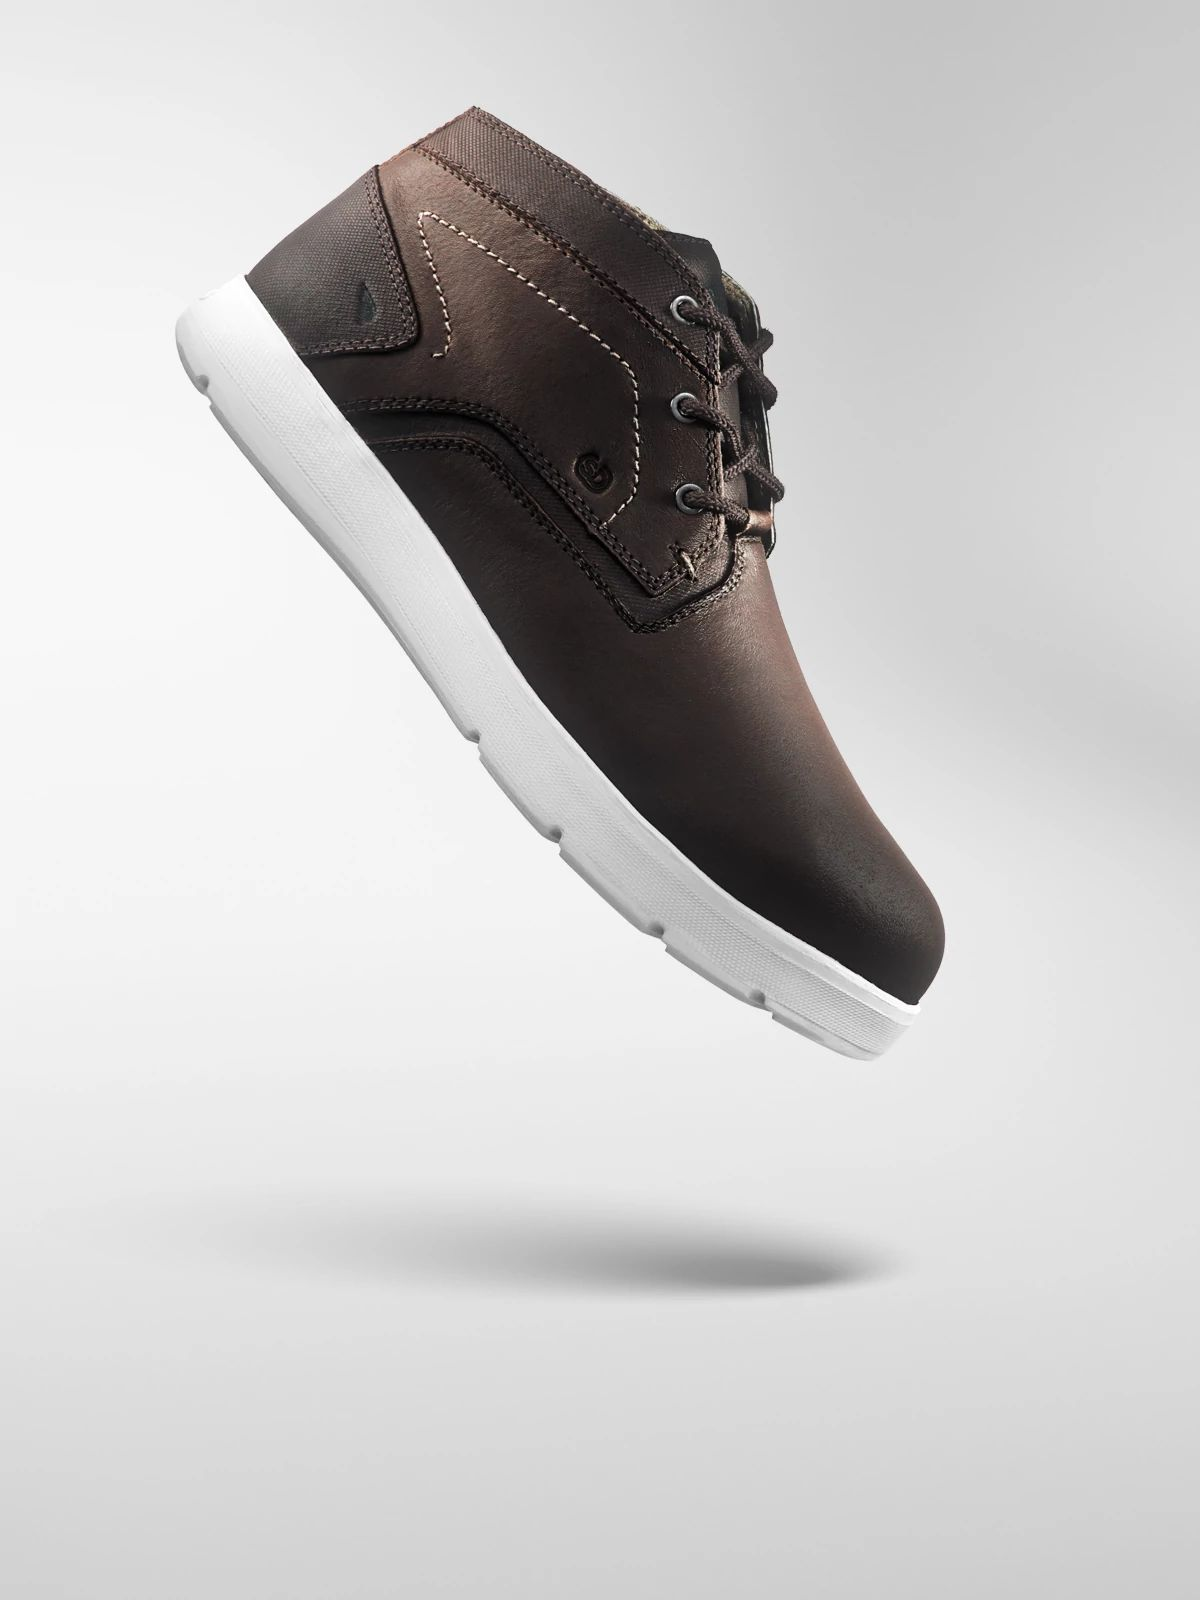 View Zero-G Lite Footwear